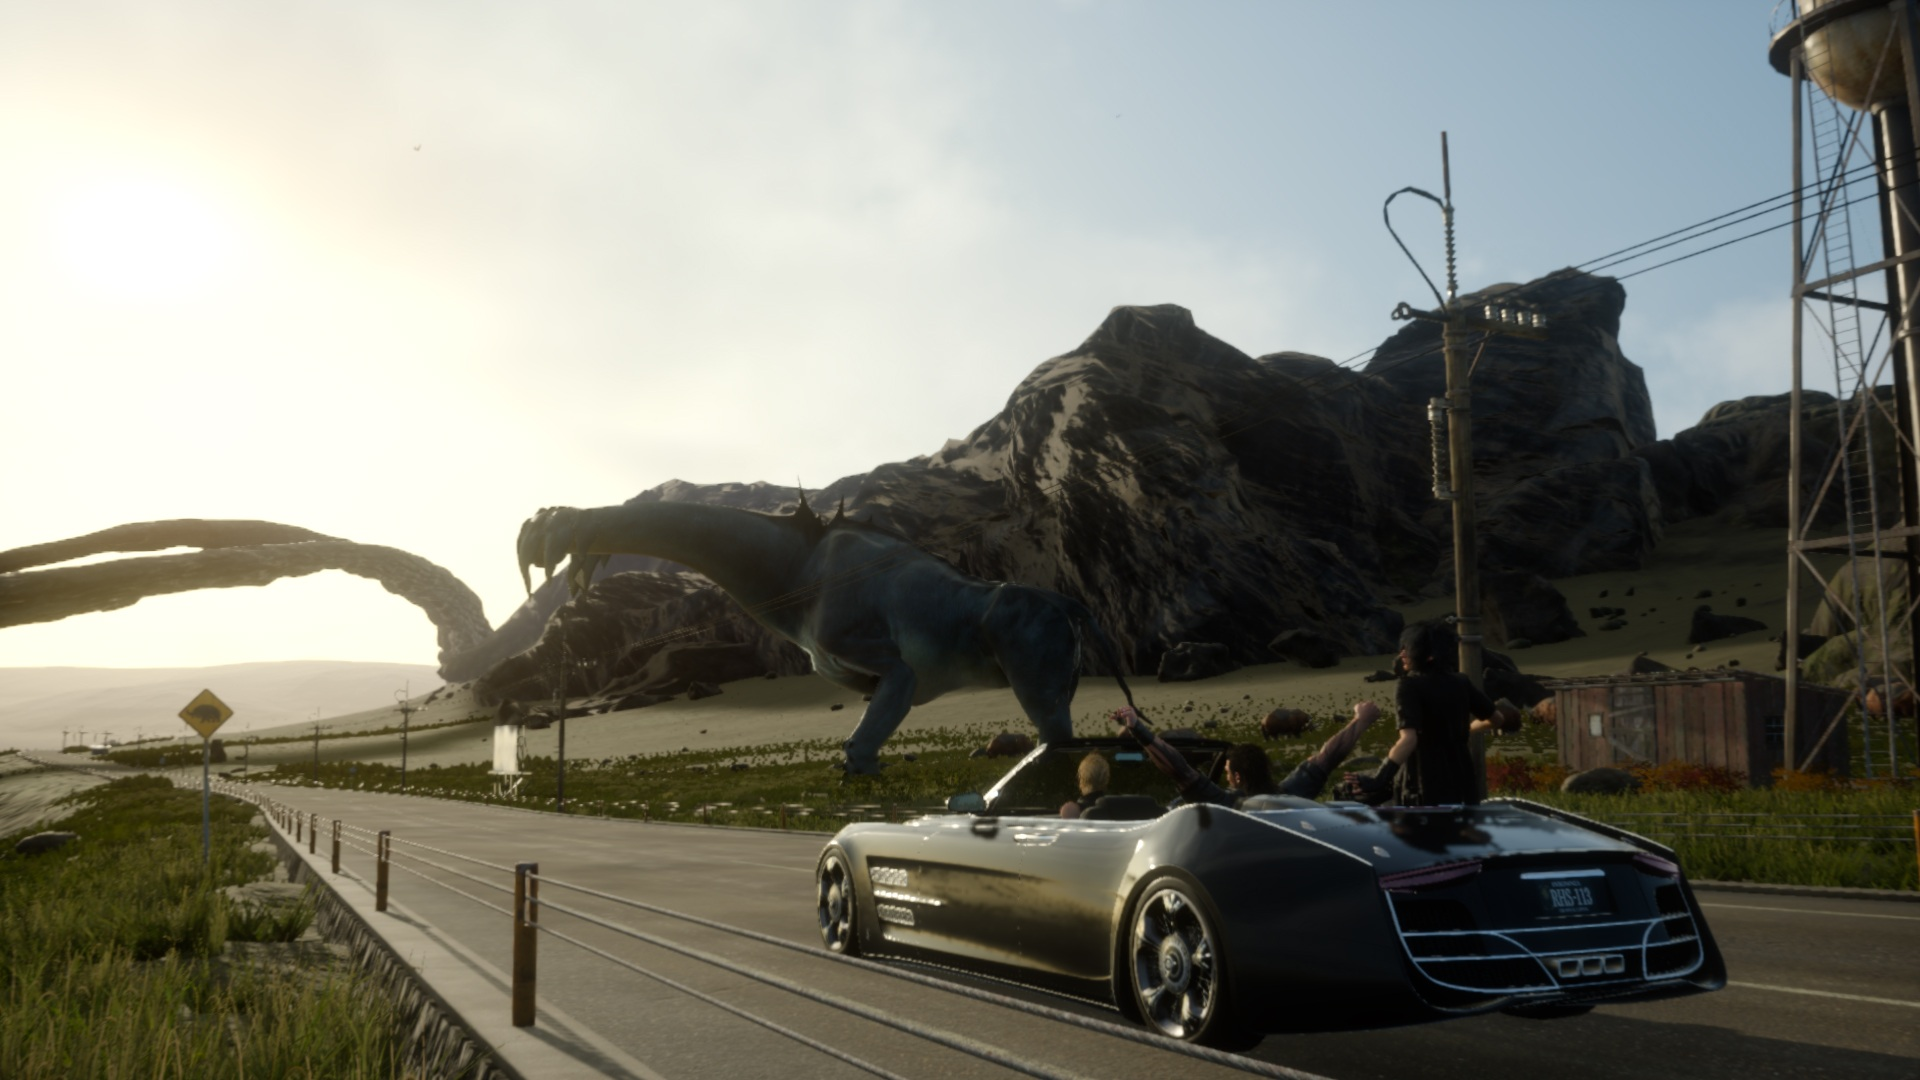 Final Fantasy XV Is So Photorealistic Its Freaking People Out 2669266 4303107486 scree